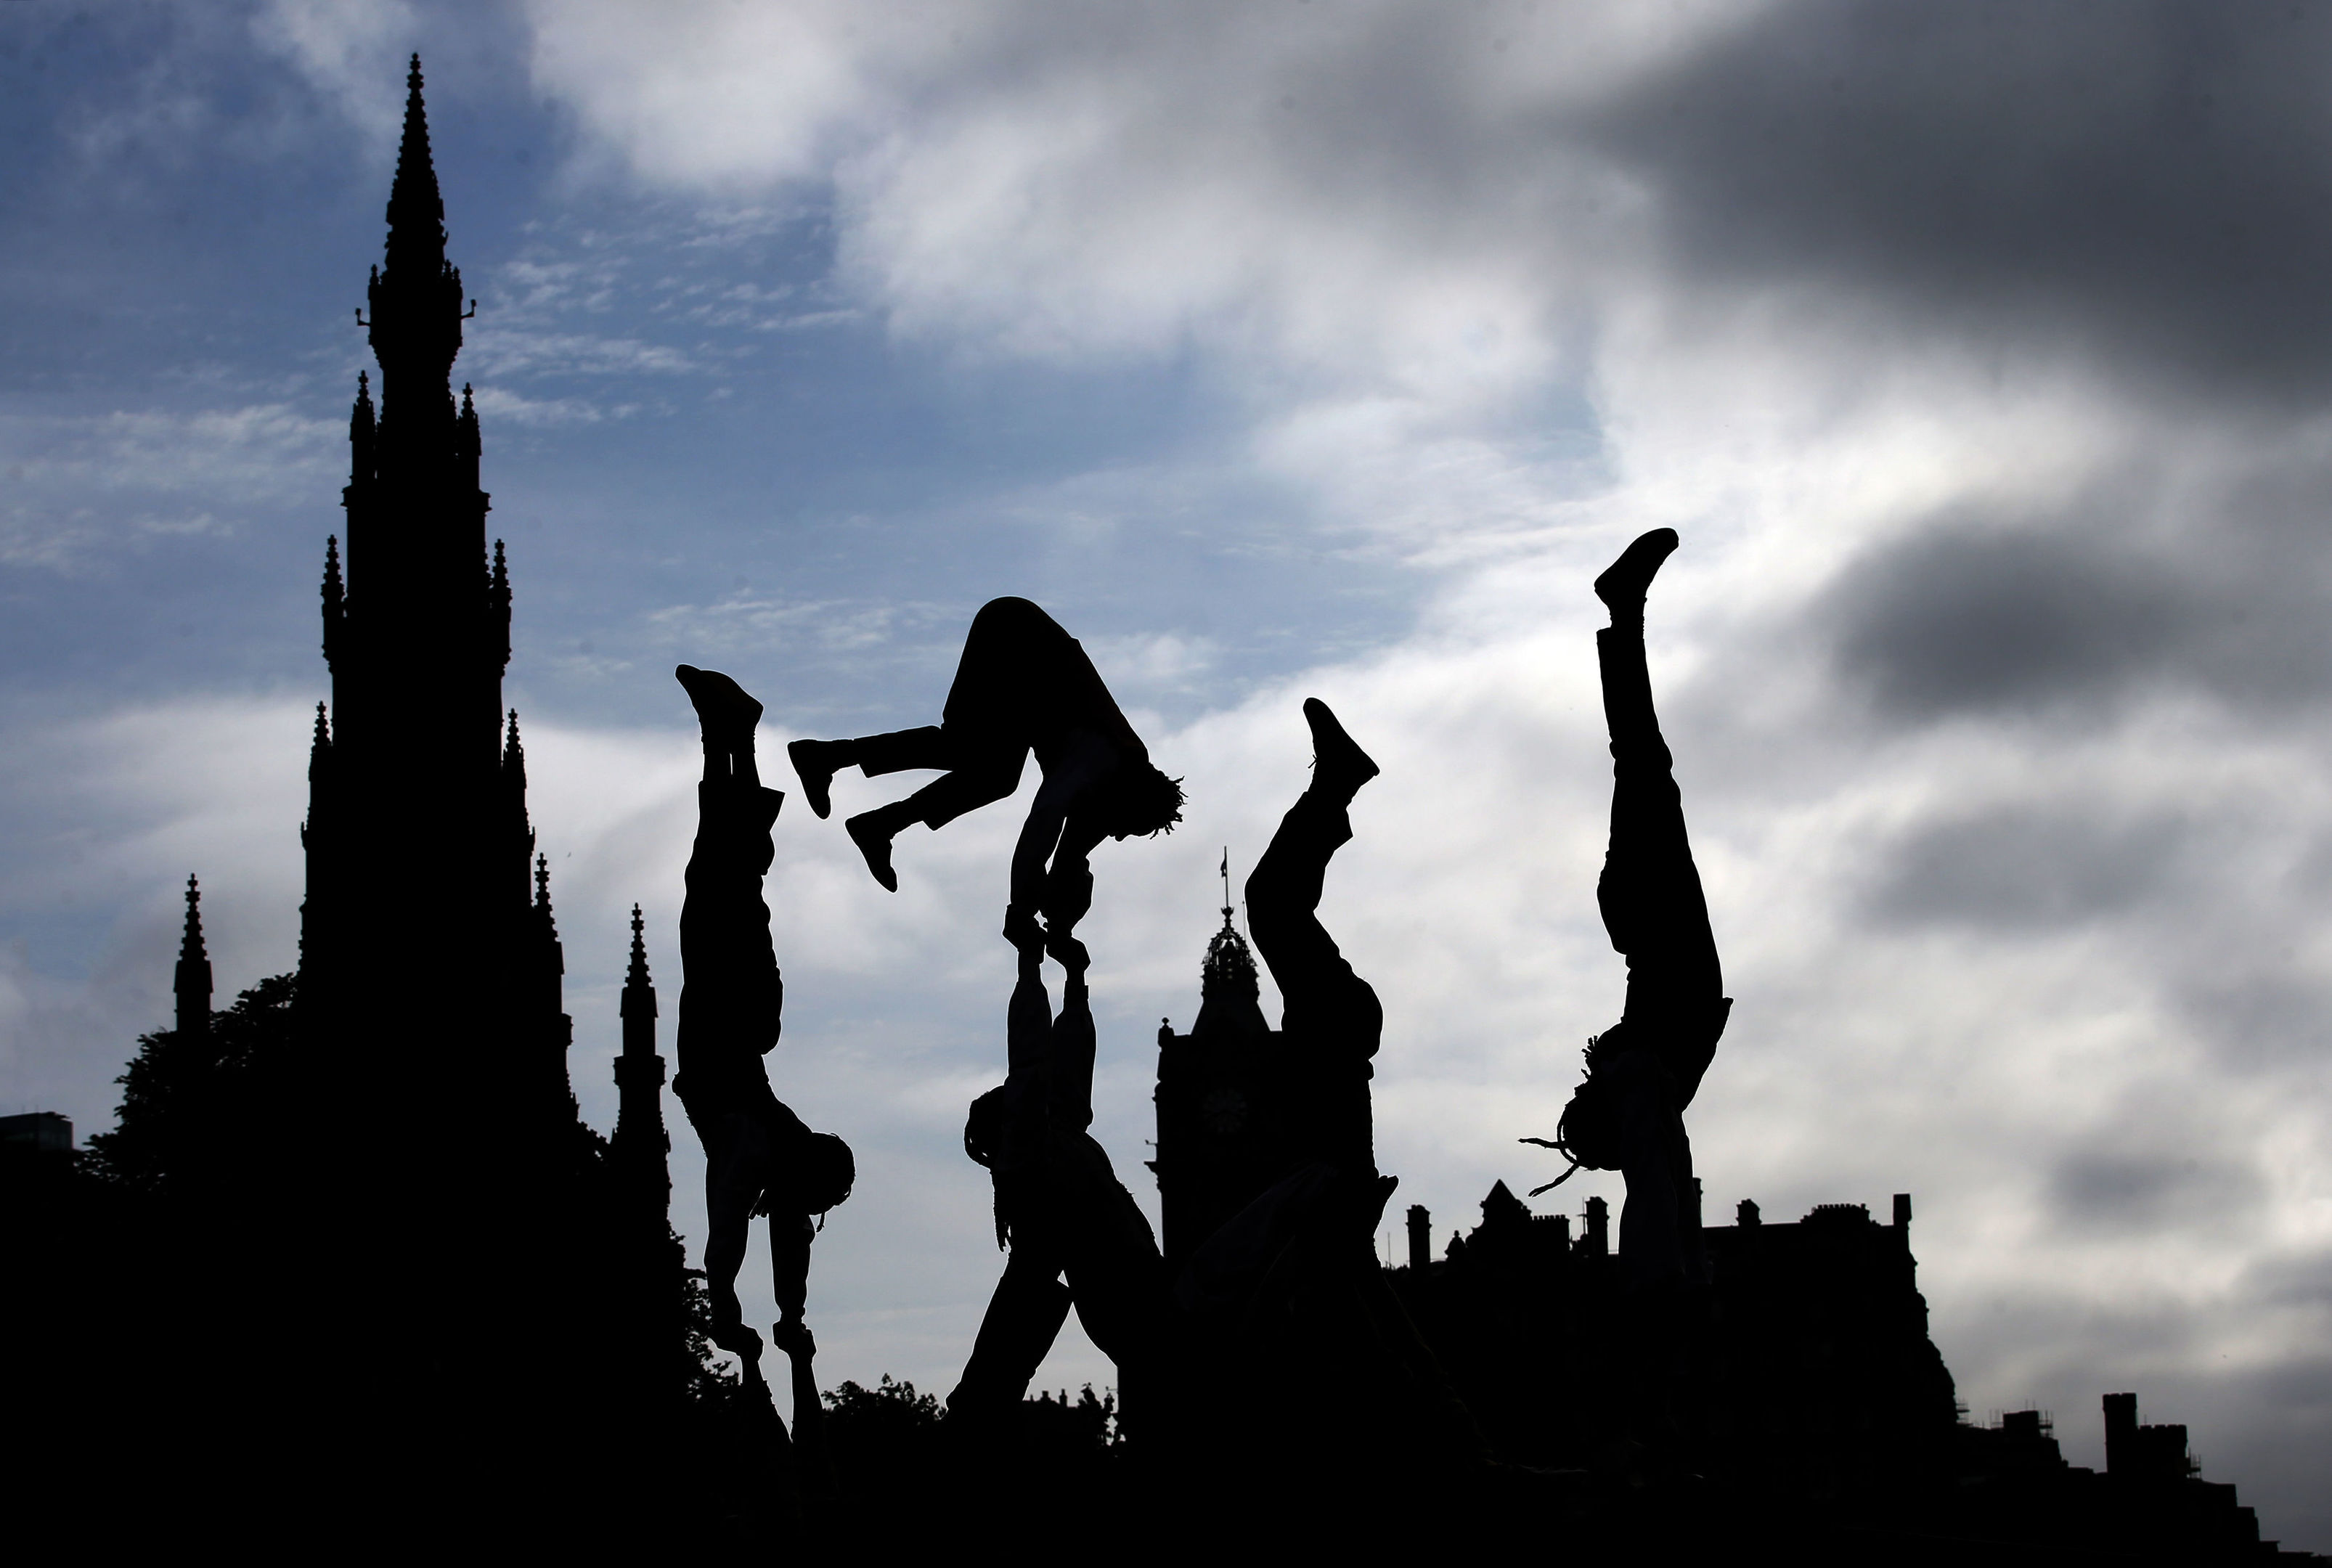 Acrobats from Cirque Berserk perform on the streets of Edinburgh to help launch the Edinburgh Festival Fringe 2018, ahead of their festival debut.  (Jane Barlow/PA Wire)